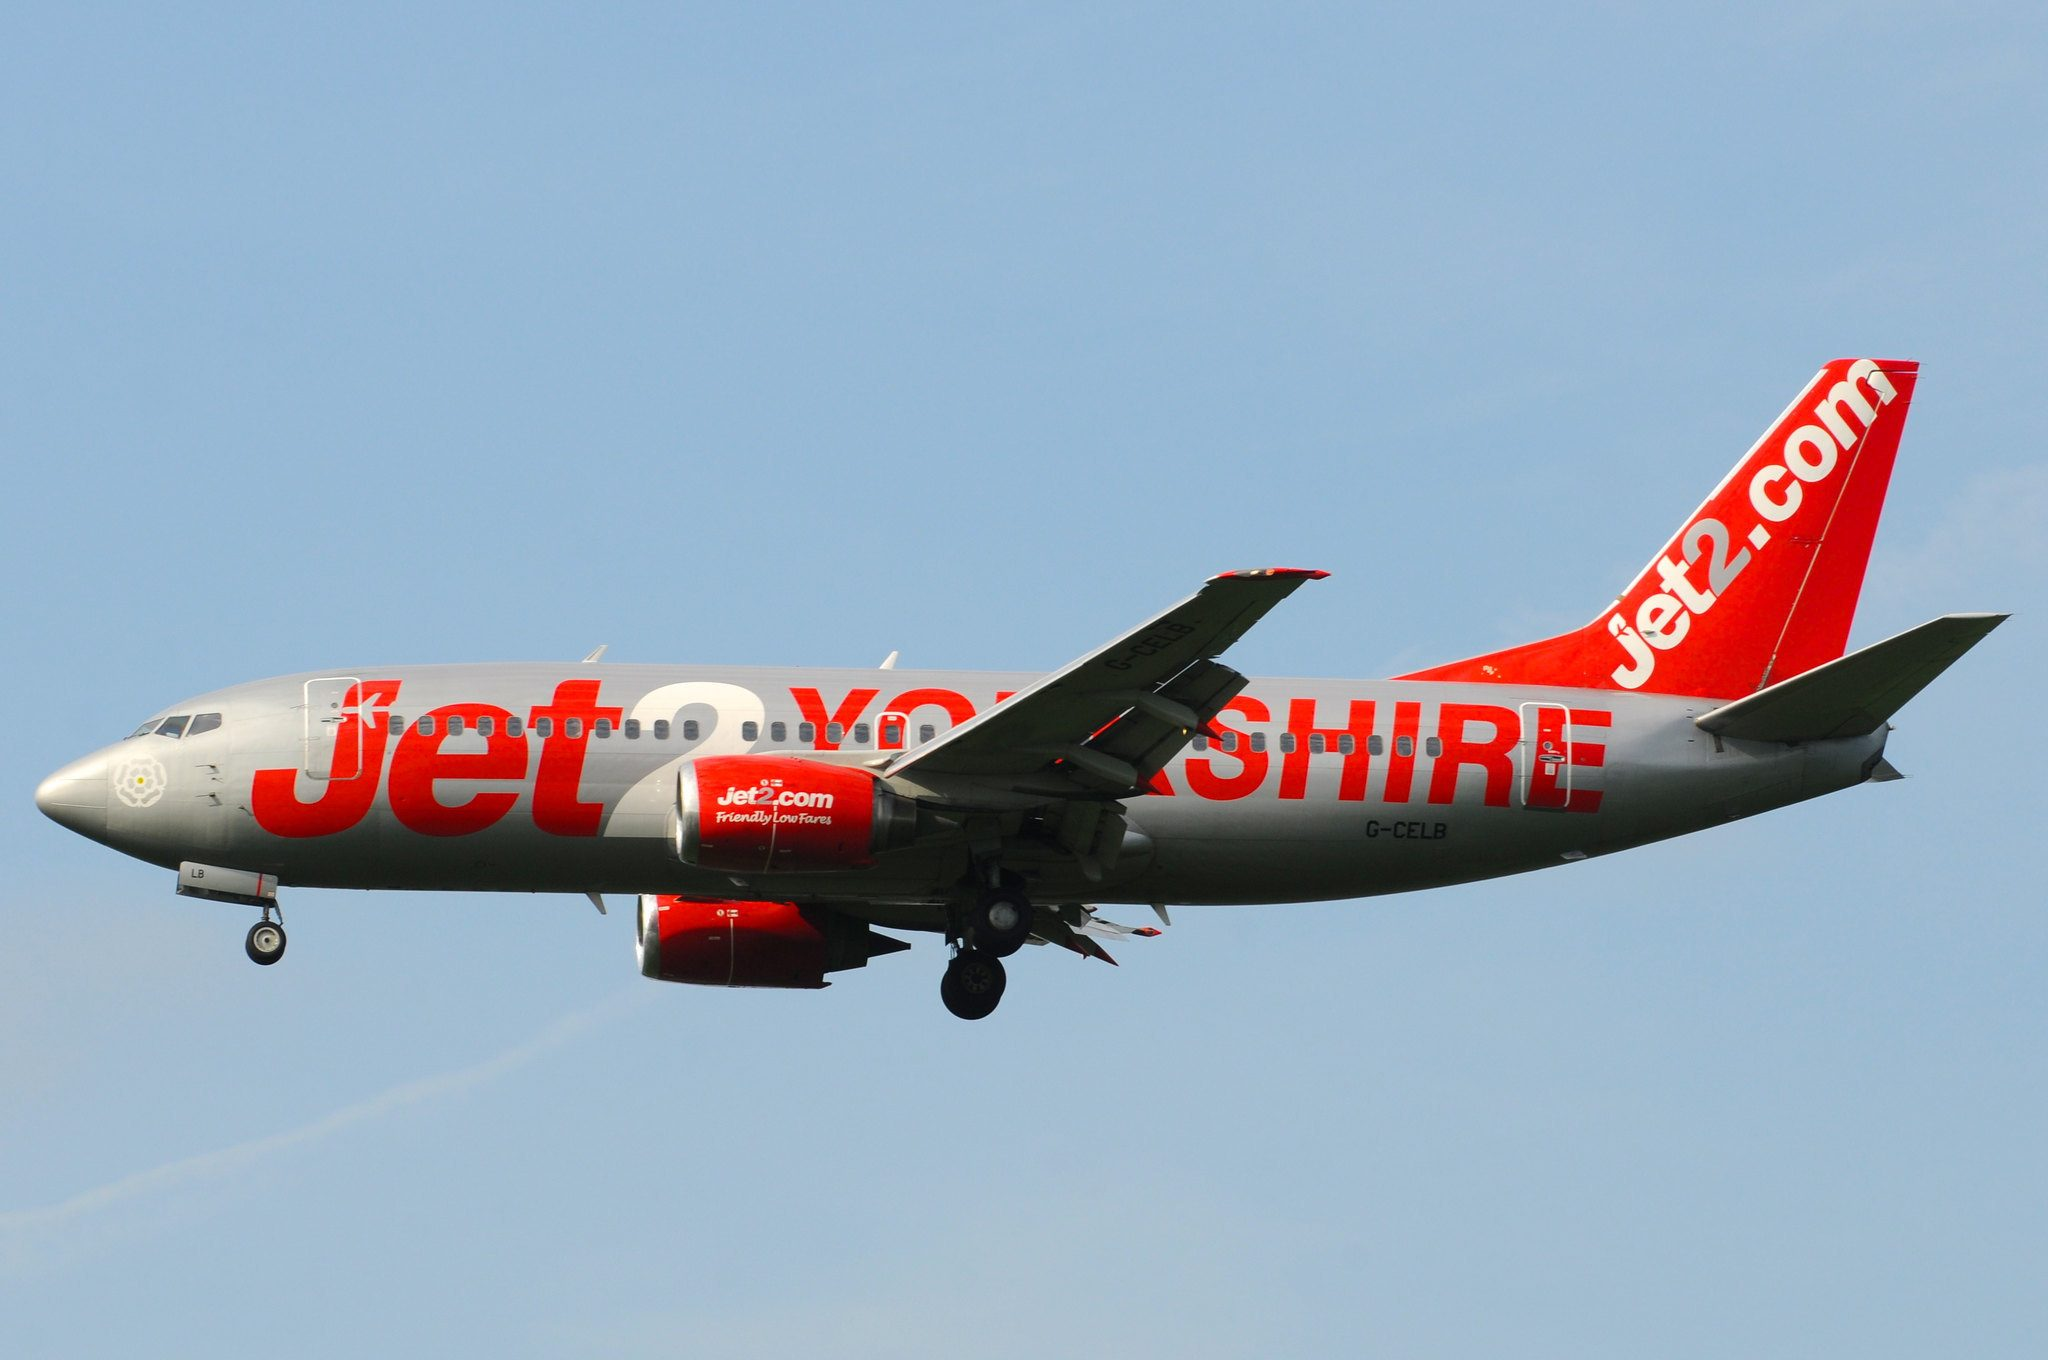 Step by Step Guide on How to Change Flights or Get Refunds on Jet2.com